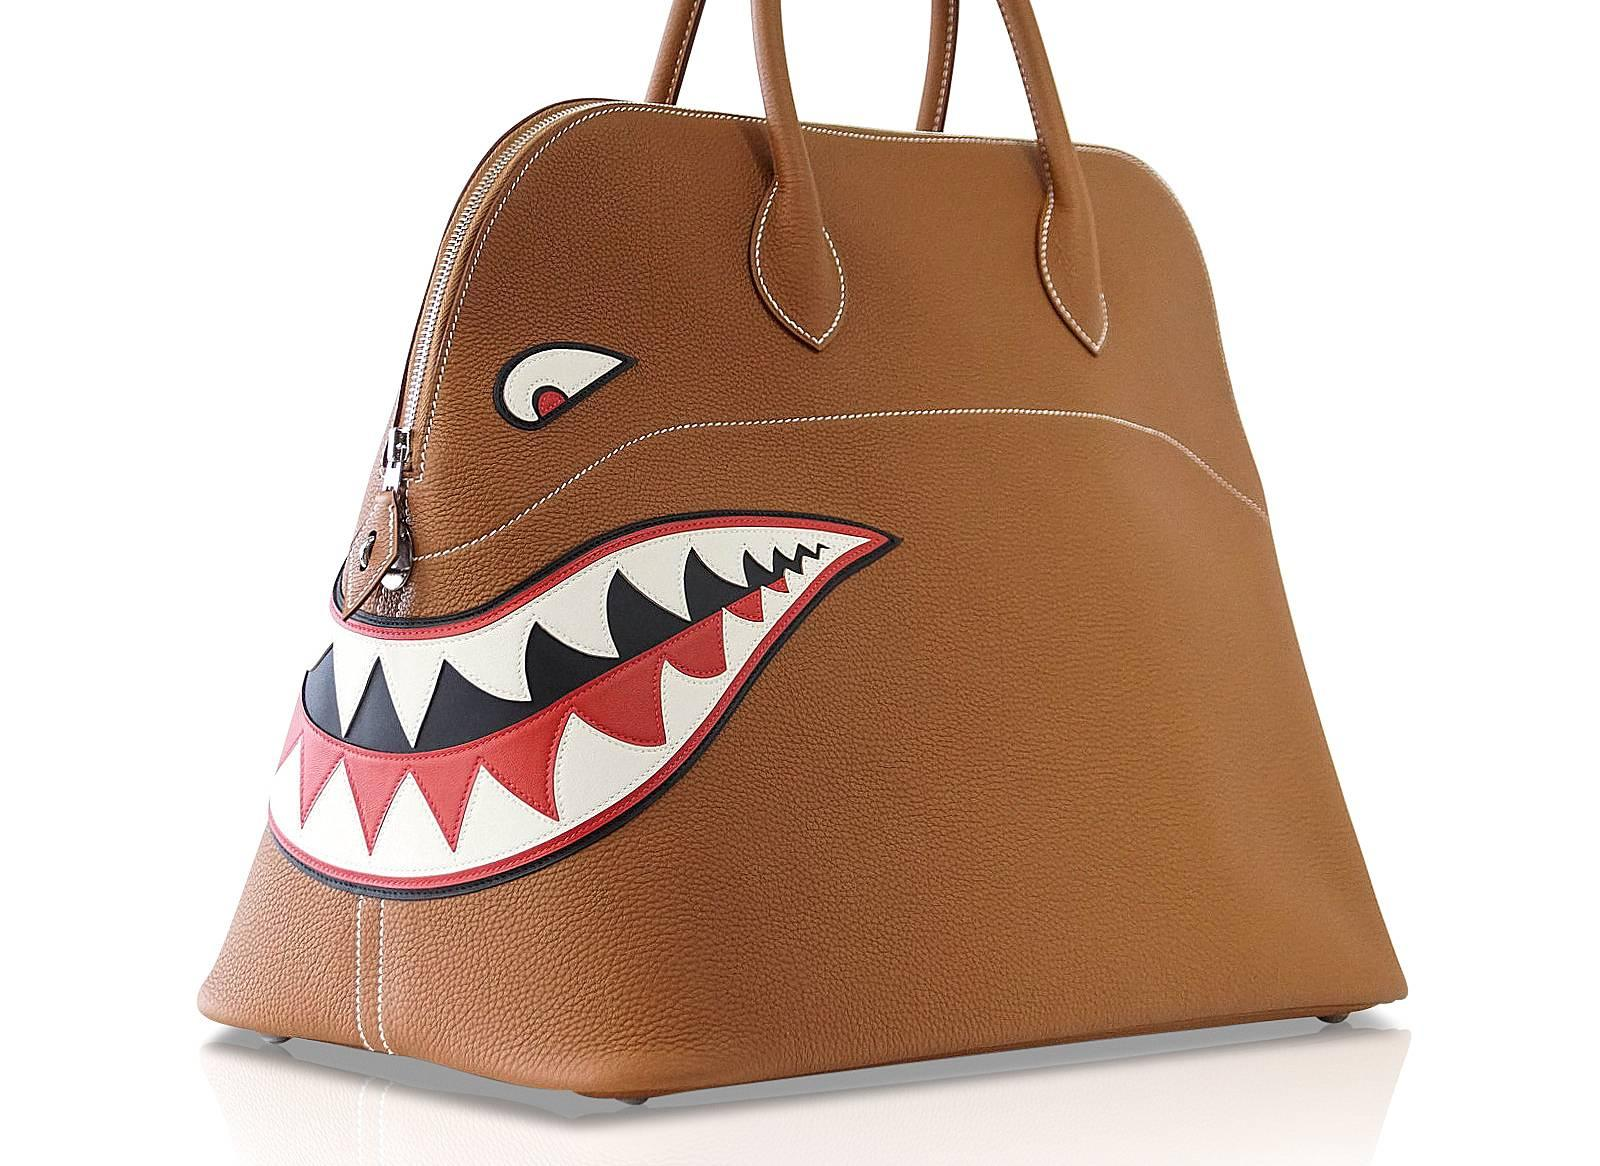 462b396f9bee Hermes Bolide Bag Shark Monster Bolide Gold Palladium Limited Edition For  Sale at 1stdibs